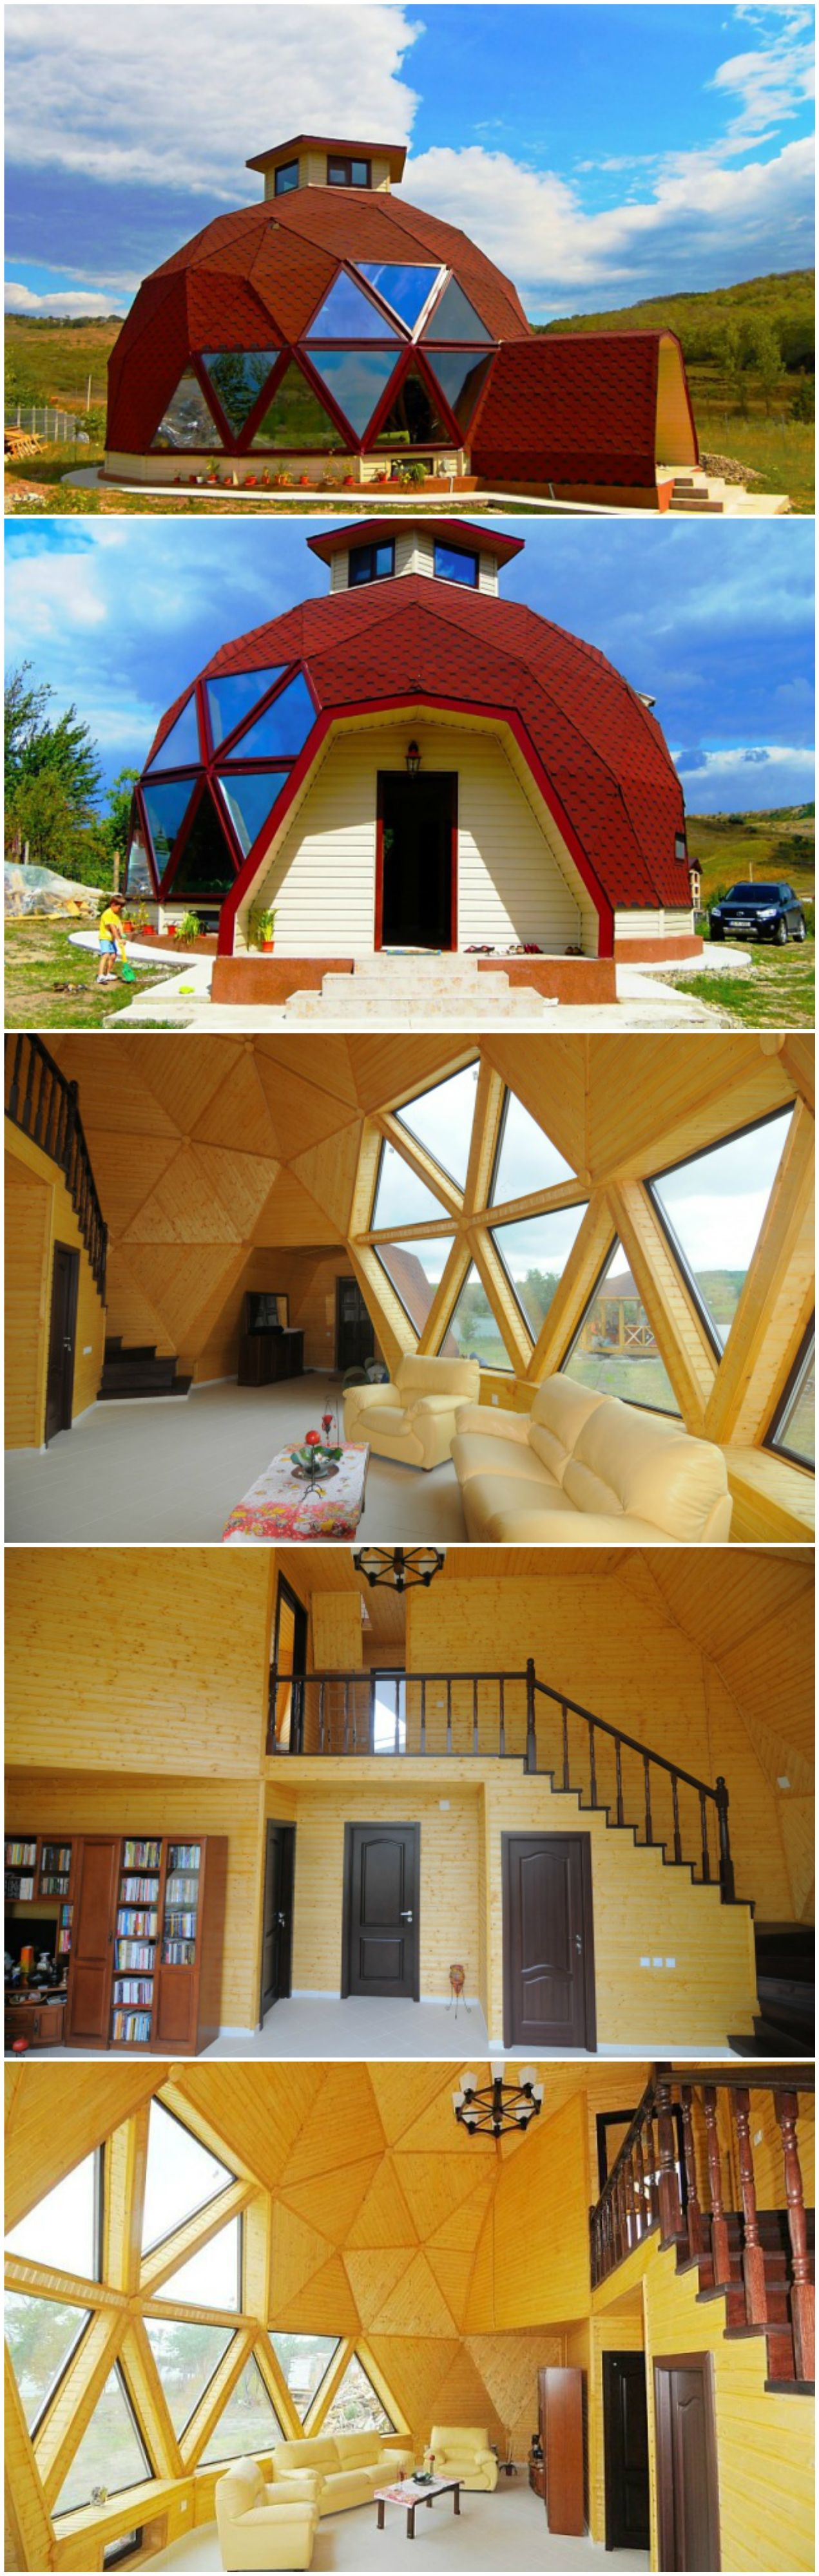 Transform a Geodesic Dome into a cozy home, restaurant or